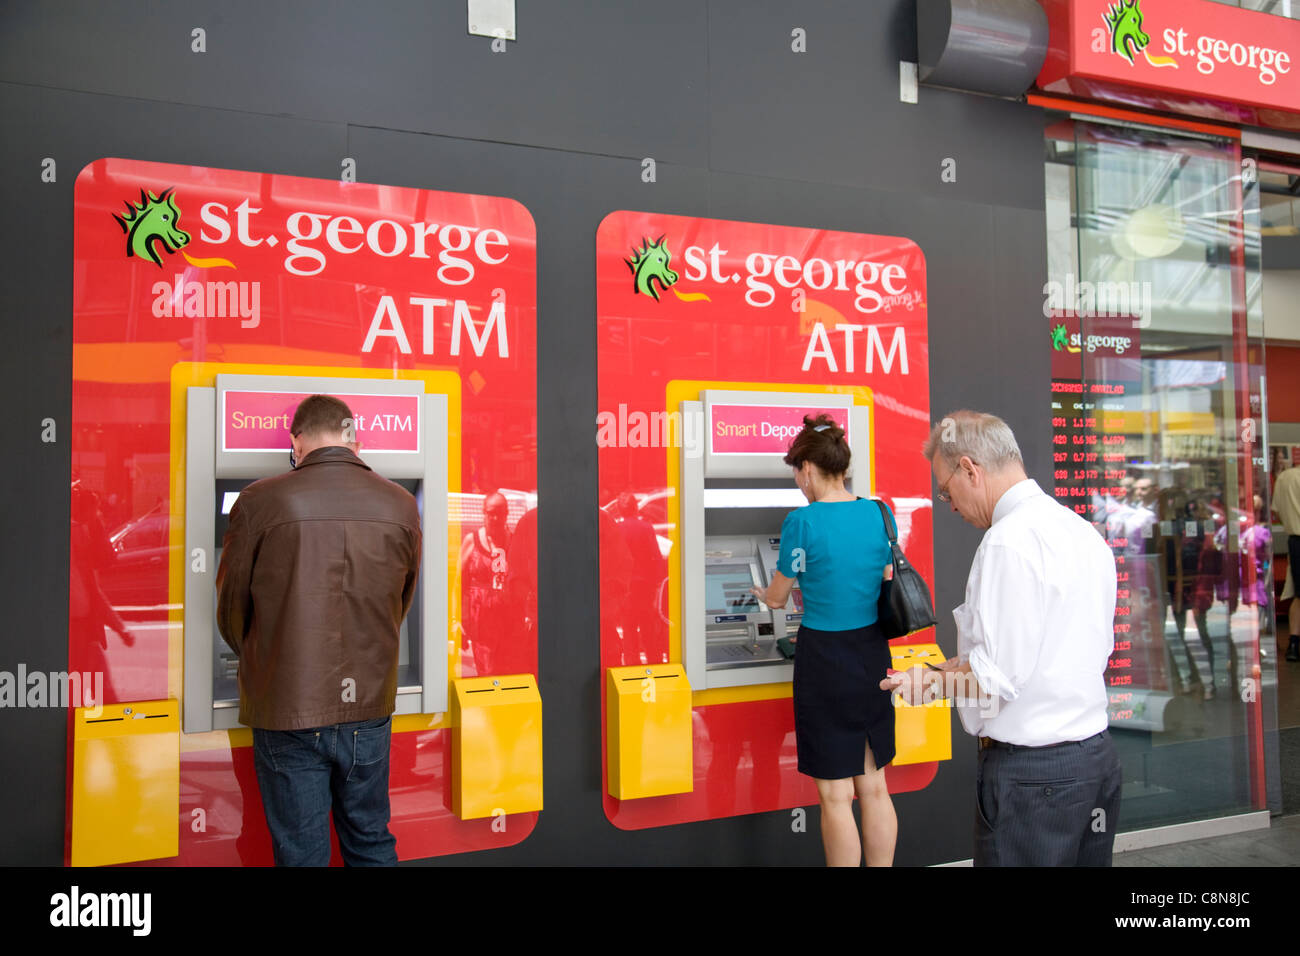 St george atm near me